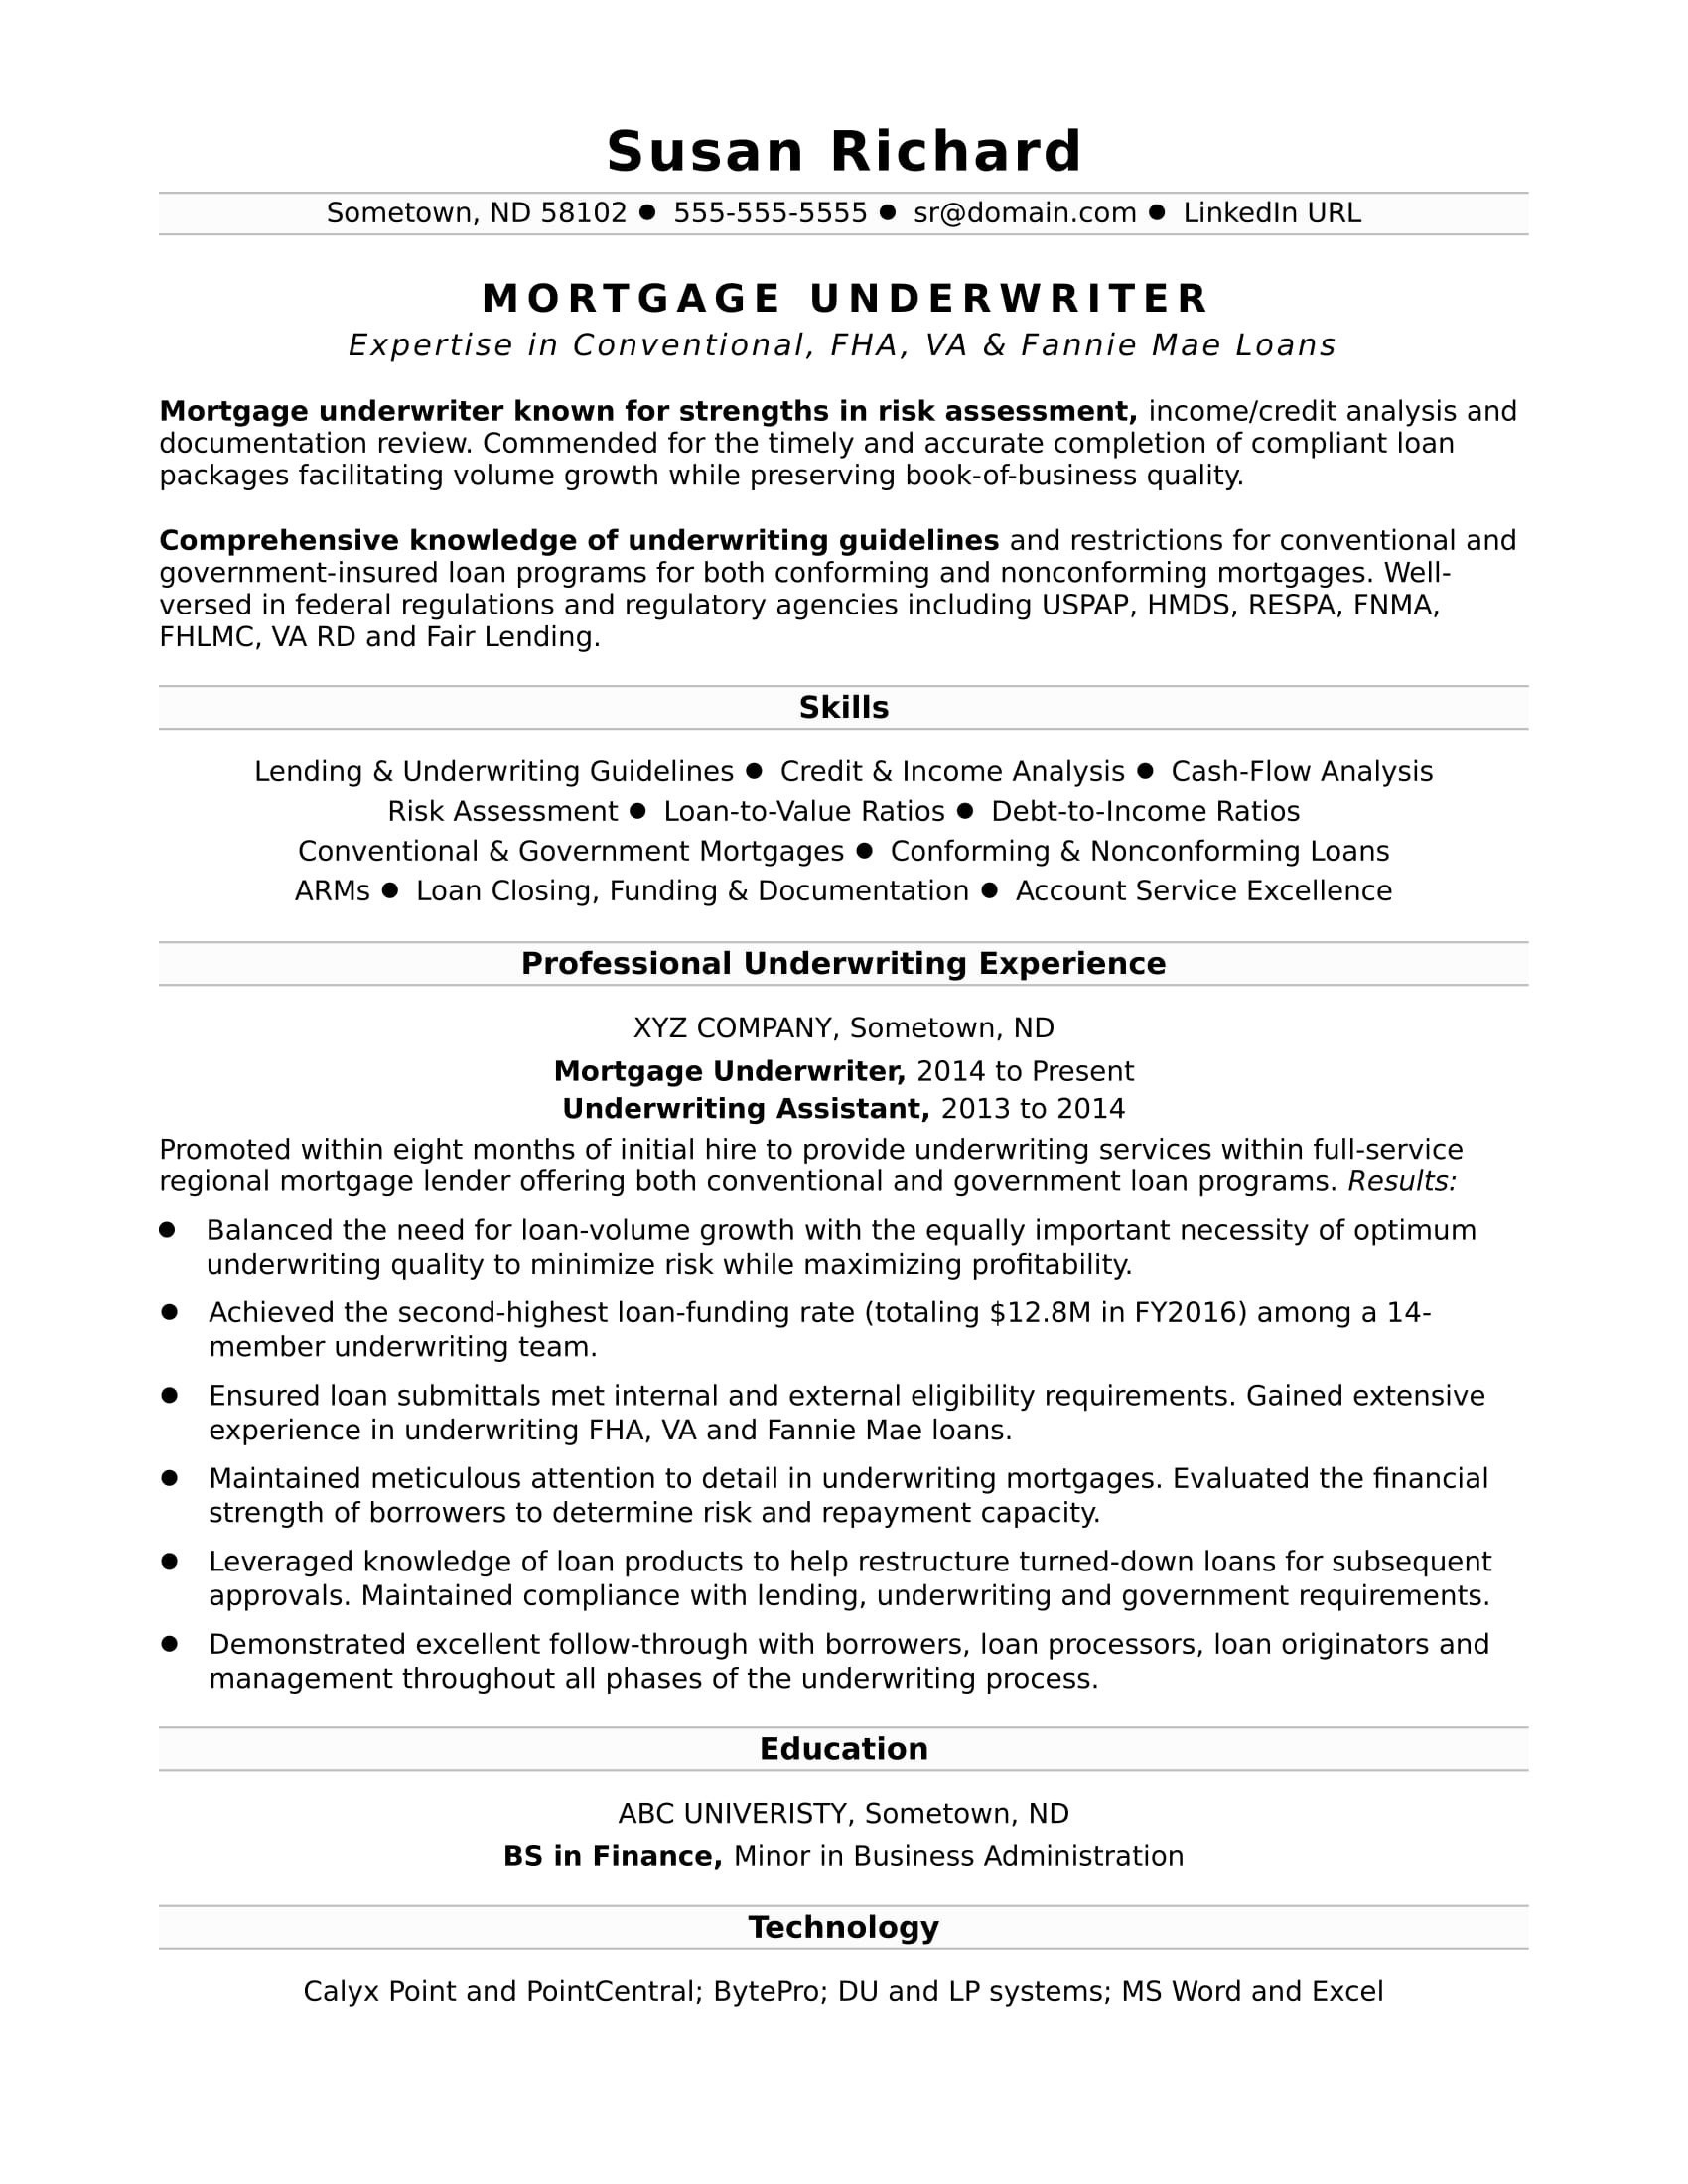 Search for Resumes - Free Resume Cover Letter Template Examples